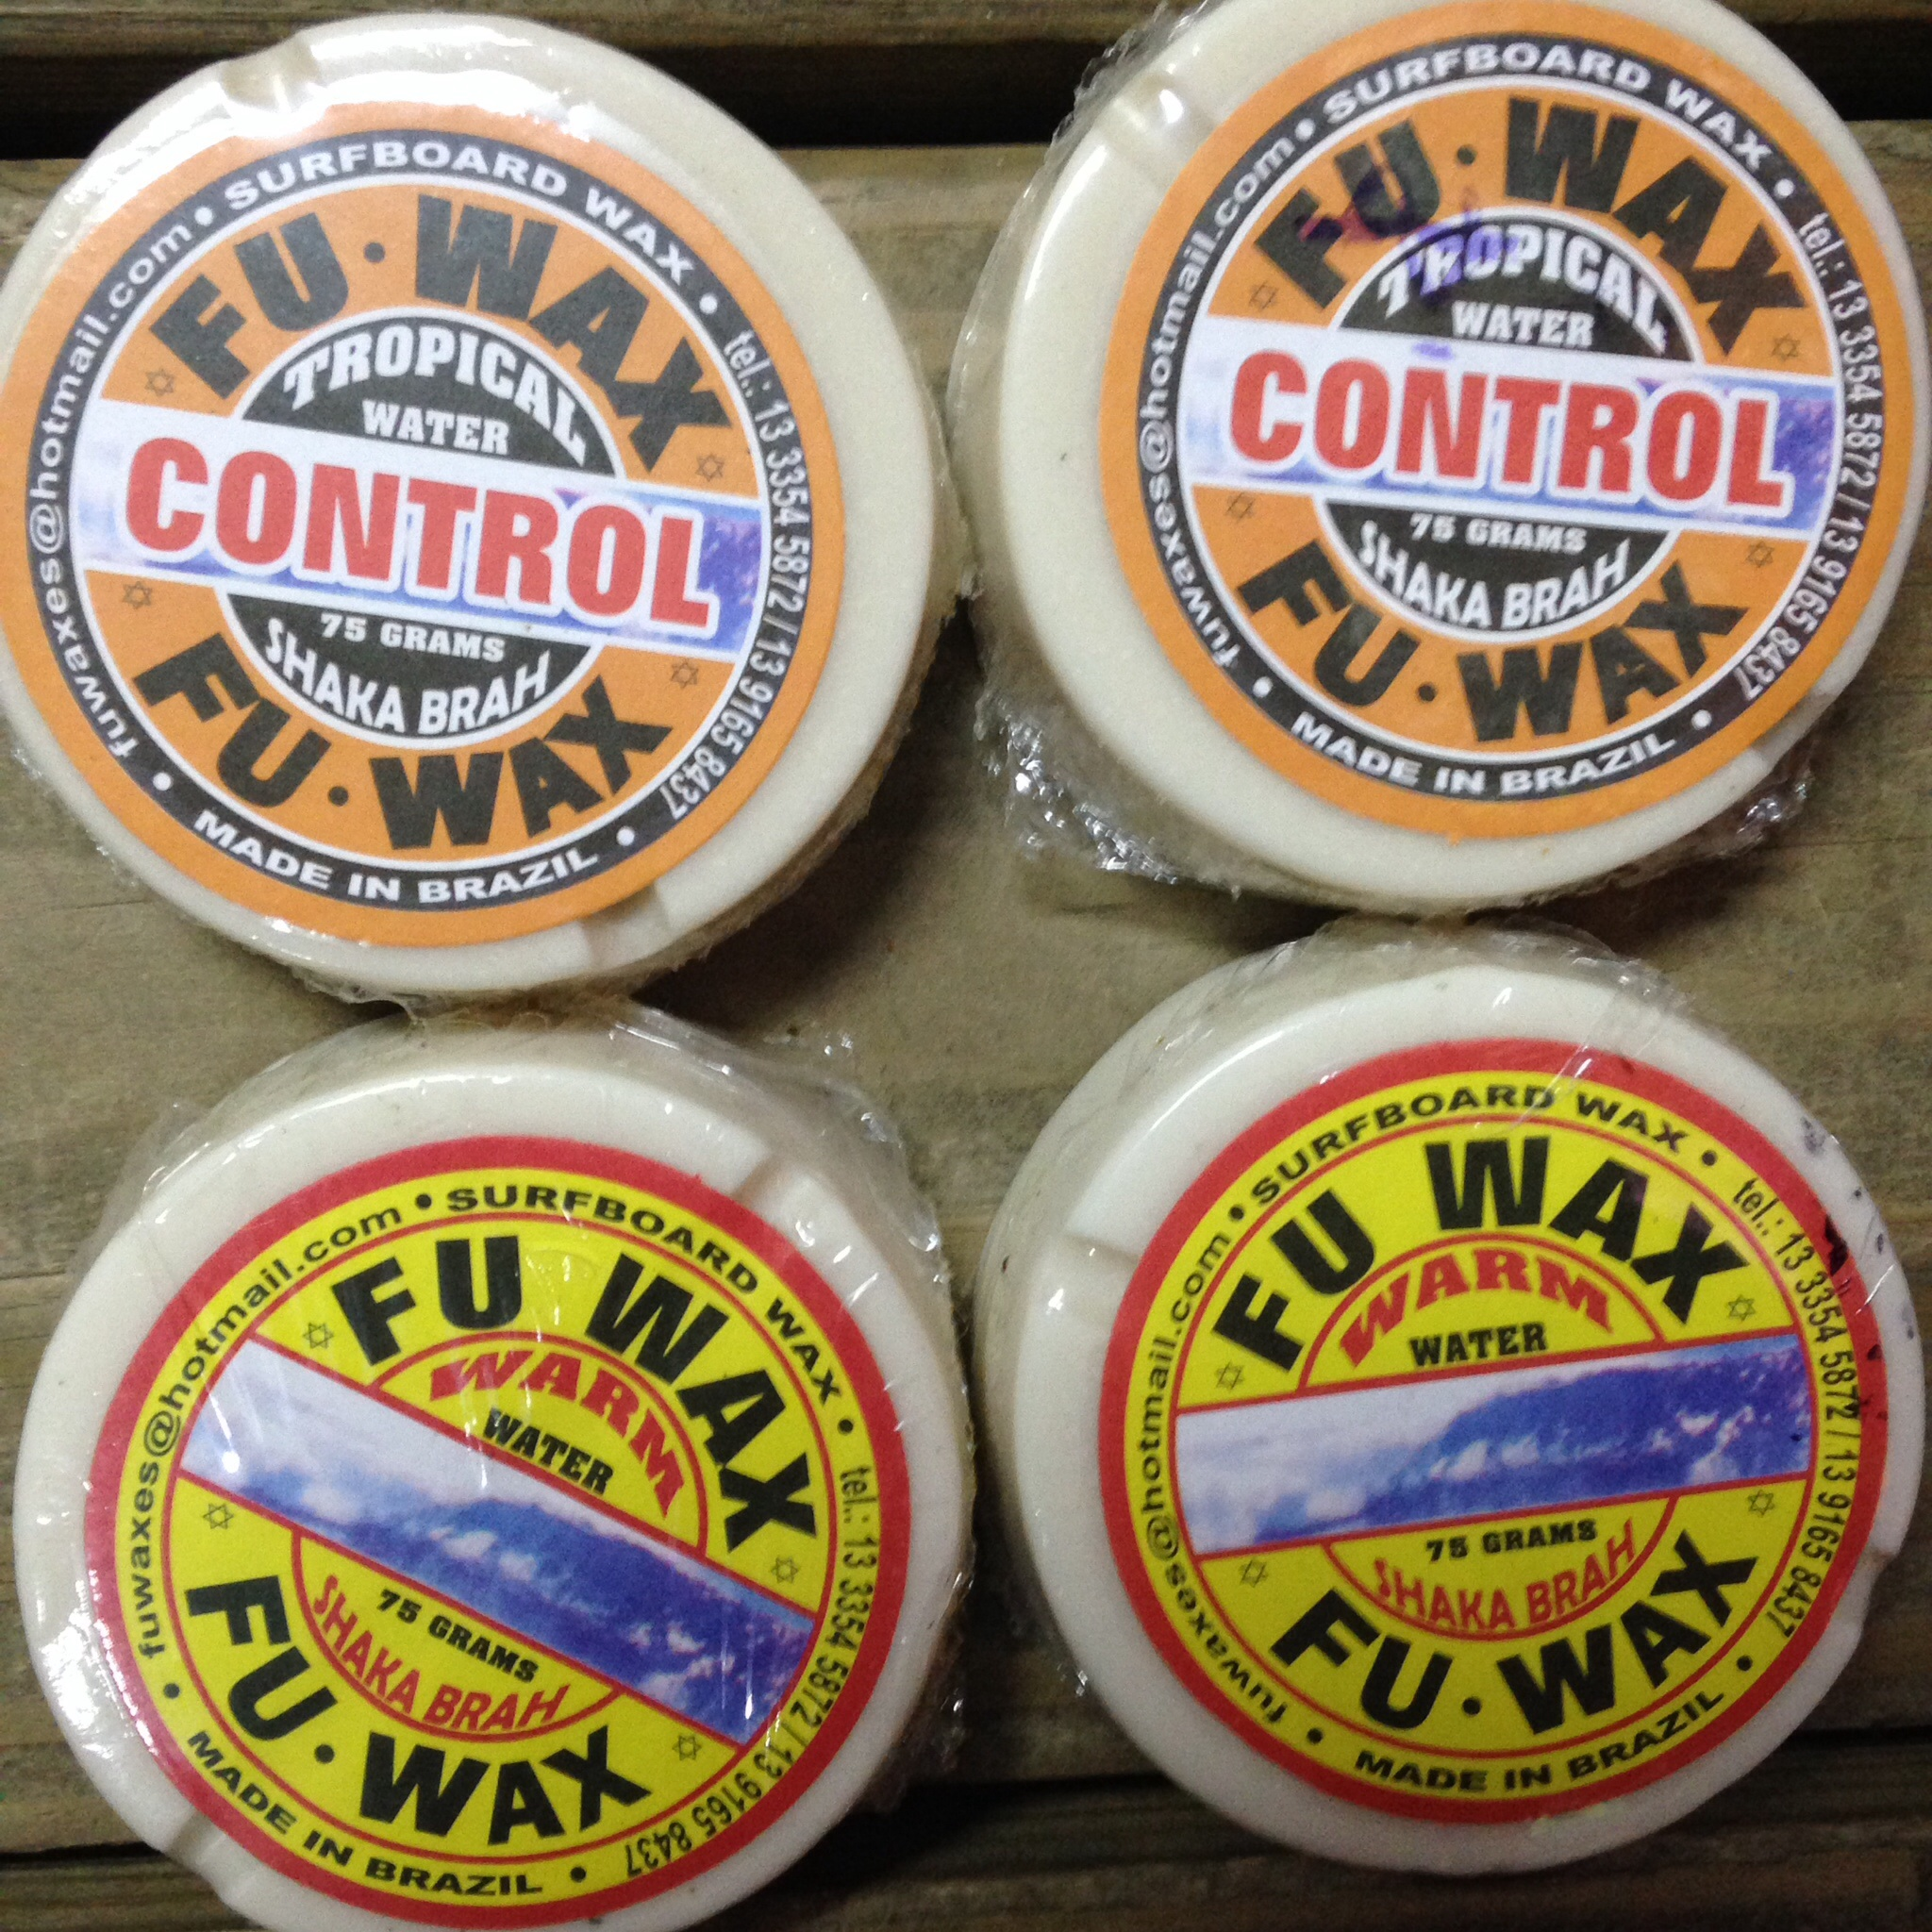 Fu wax! Warm and tropical!